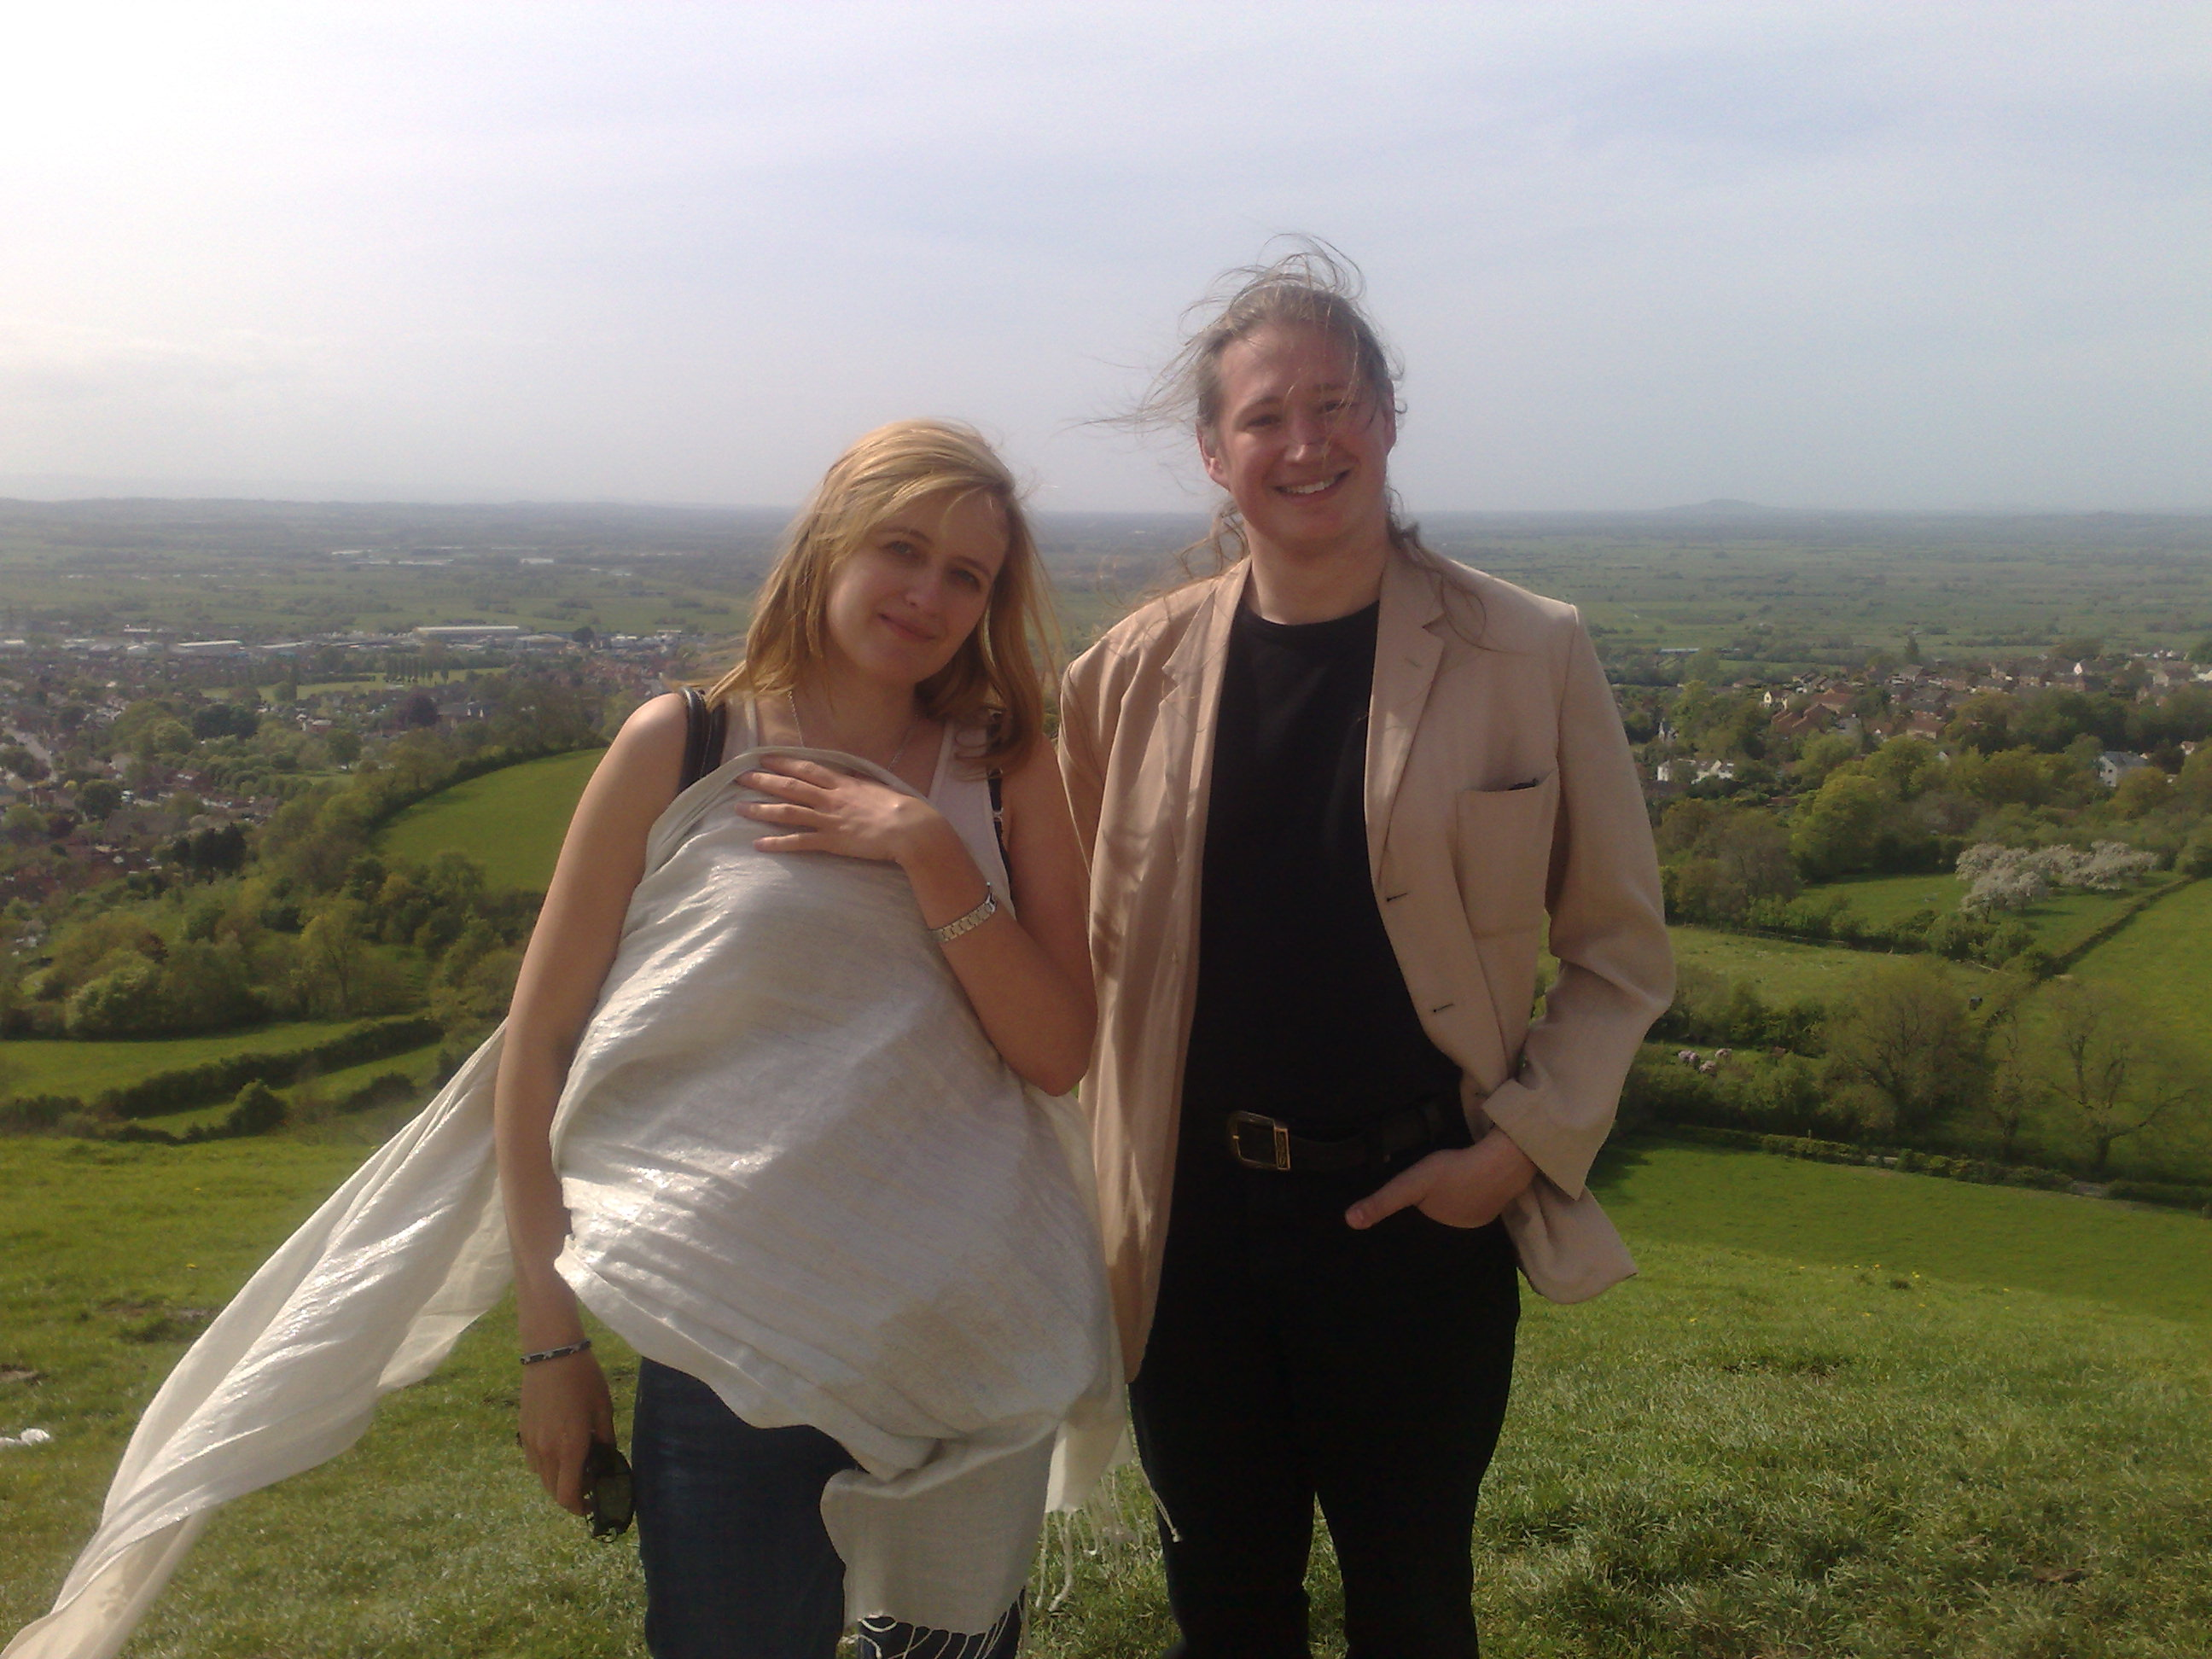 We pose for a historic photo on top of the magical hill - documenting that the twain have met, and are now considering a stroll down to Glastonbury for some ale